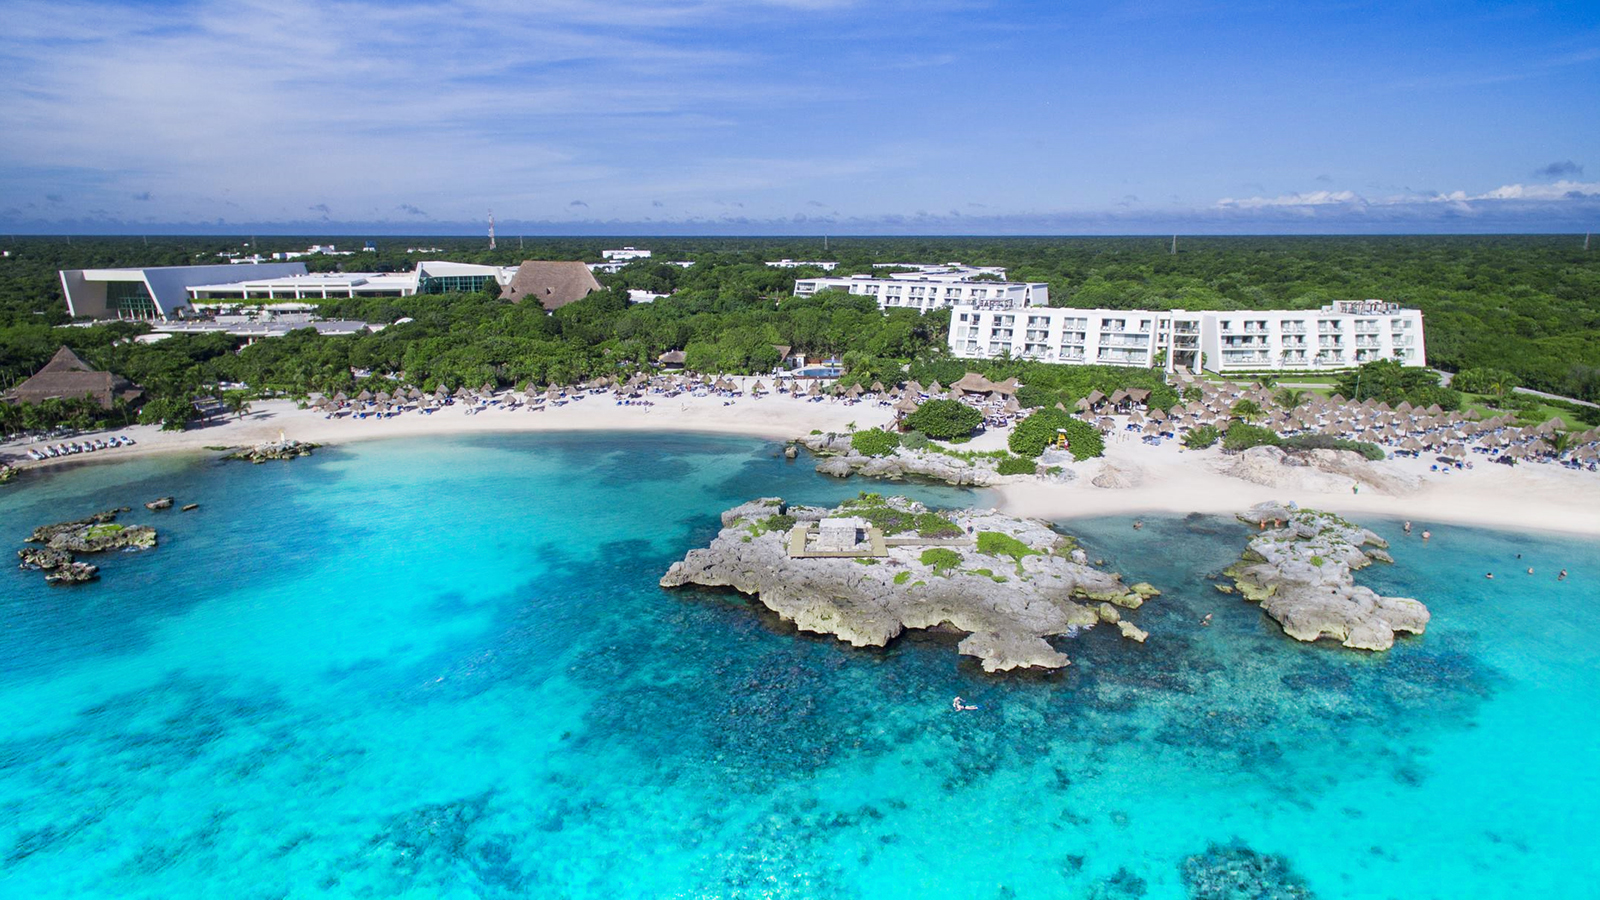 Showing Grand Sirenis Riviera Maya Resort and Spa feature image